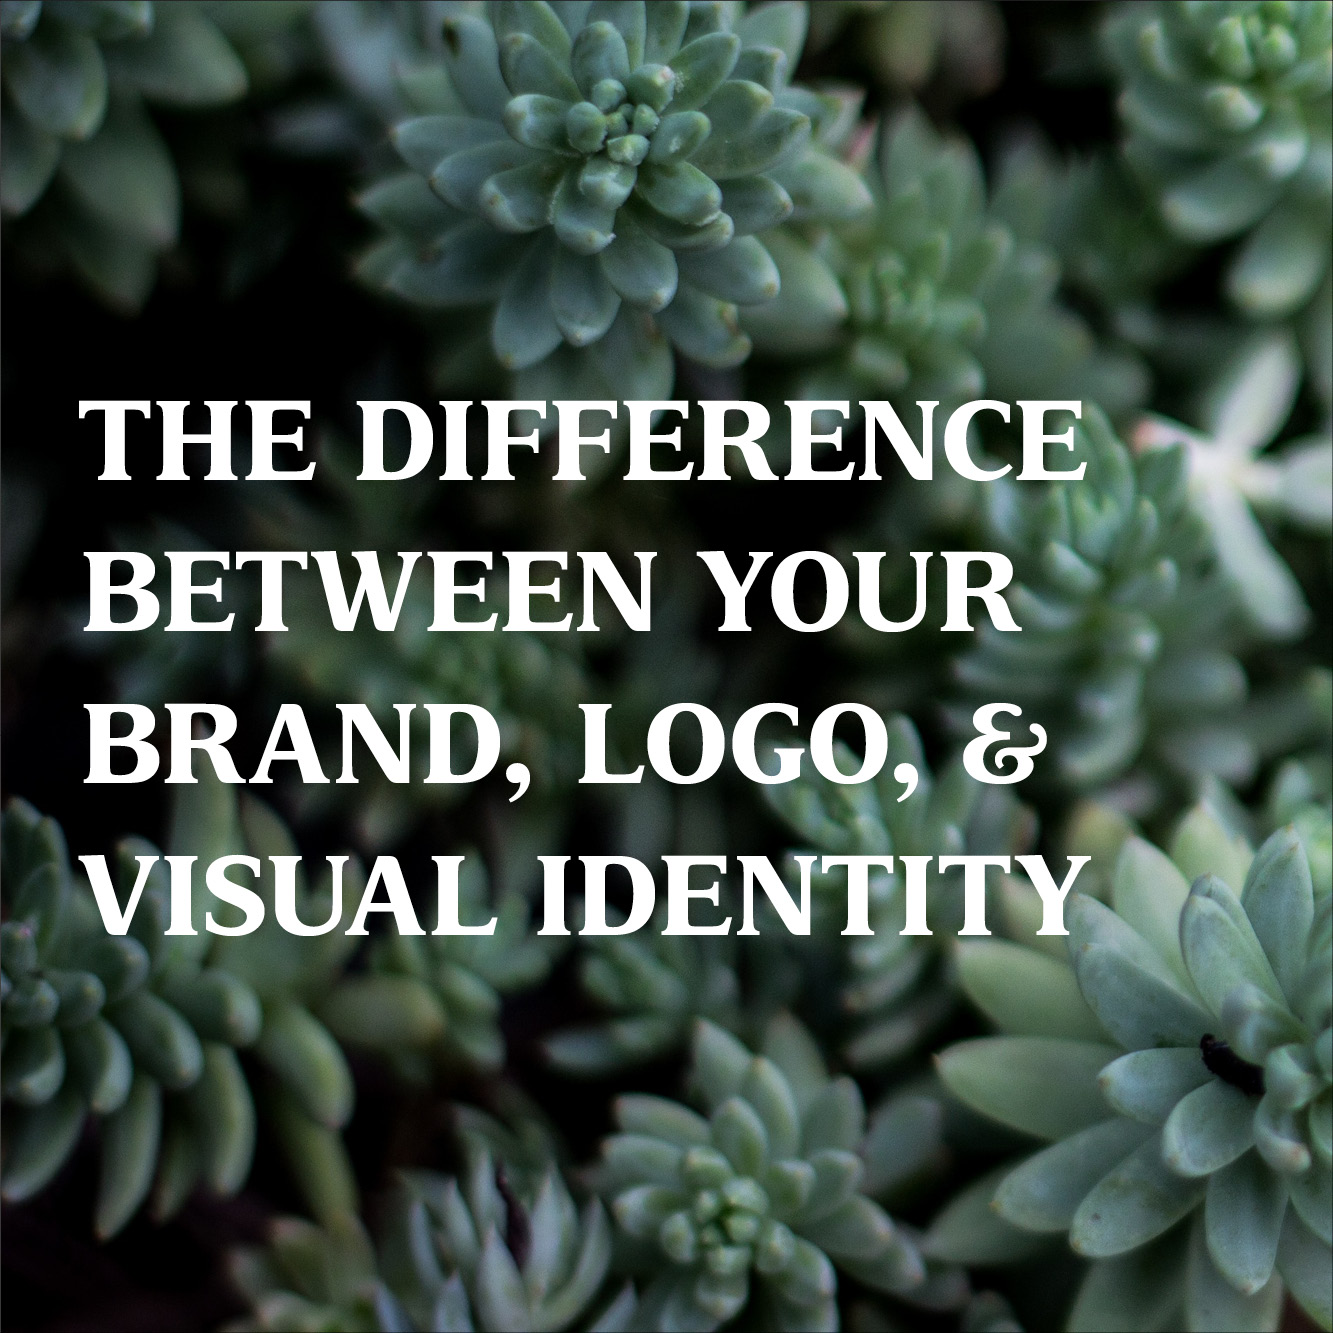 The Difference Between Your Brand, Logo, and Visual Identity